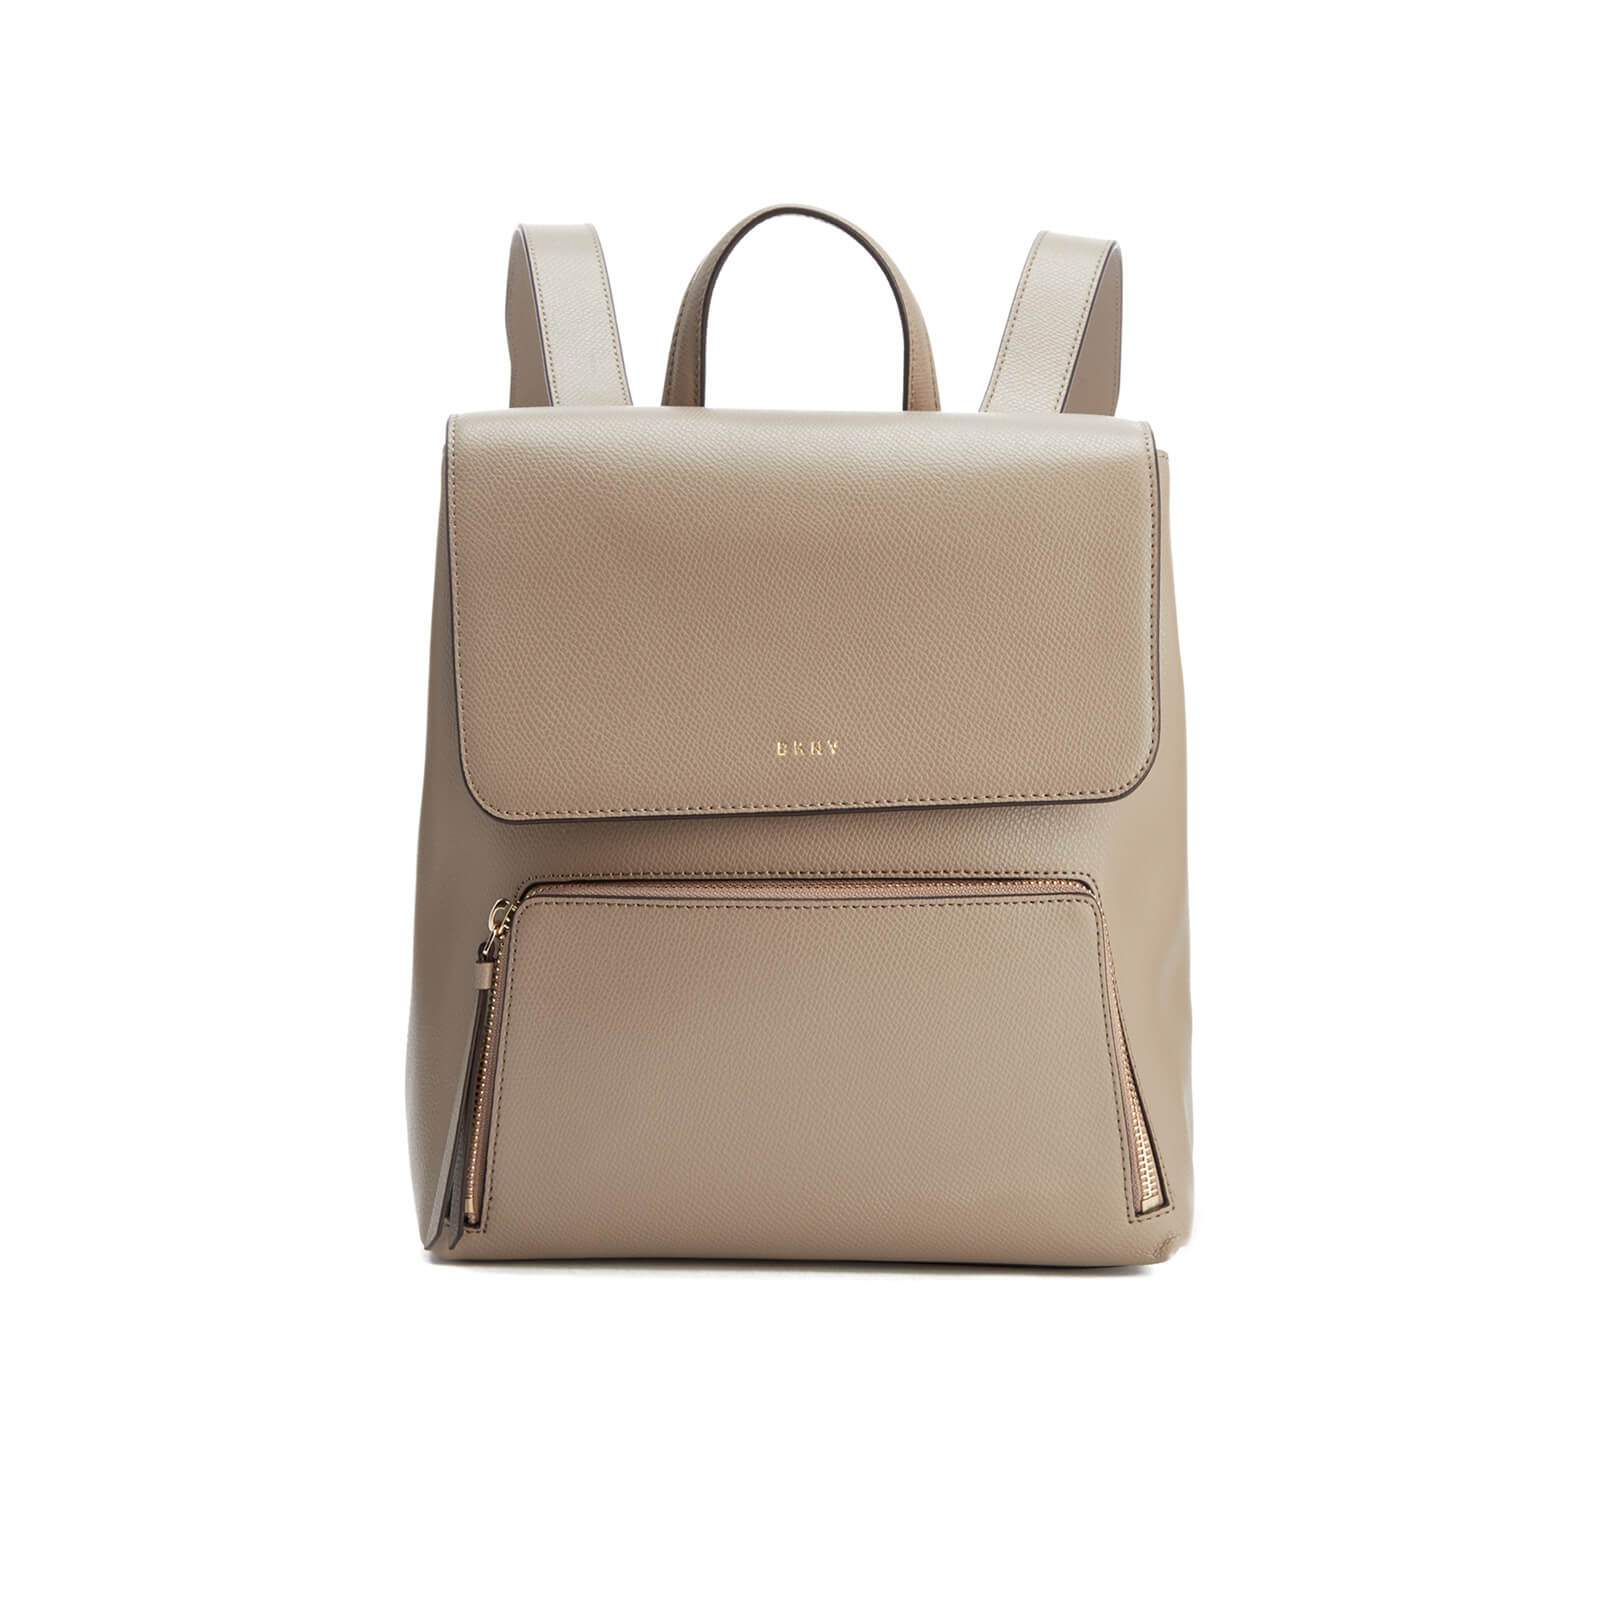 4e695d0c68 DKNY Women s Bryant Park Backpack - Soft Clay - Free UK Delivery over £50